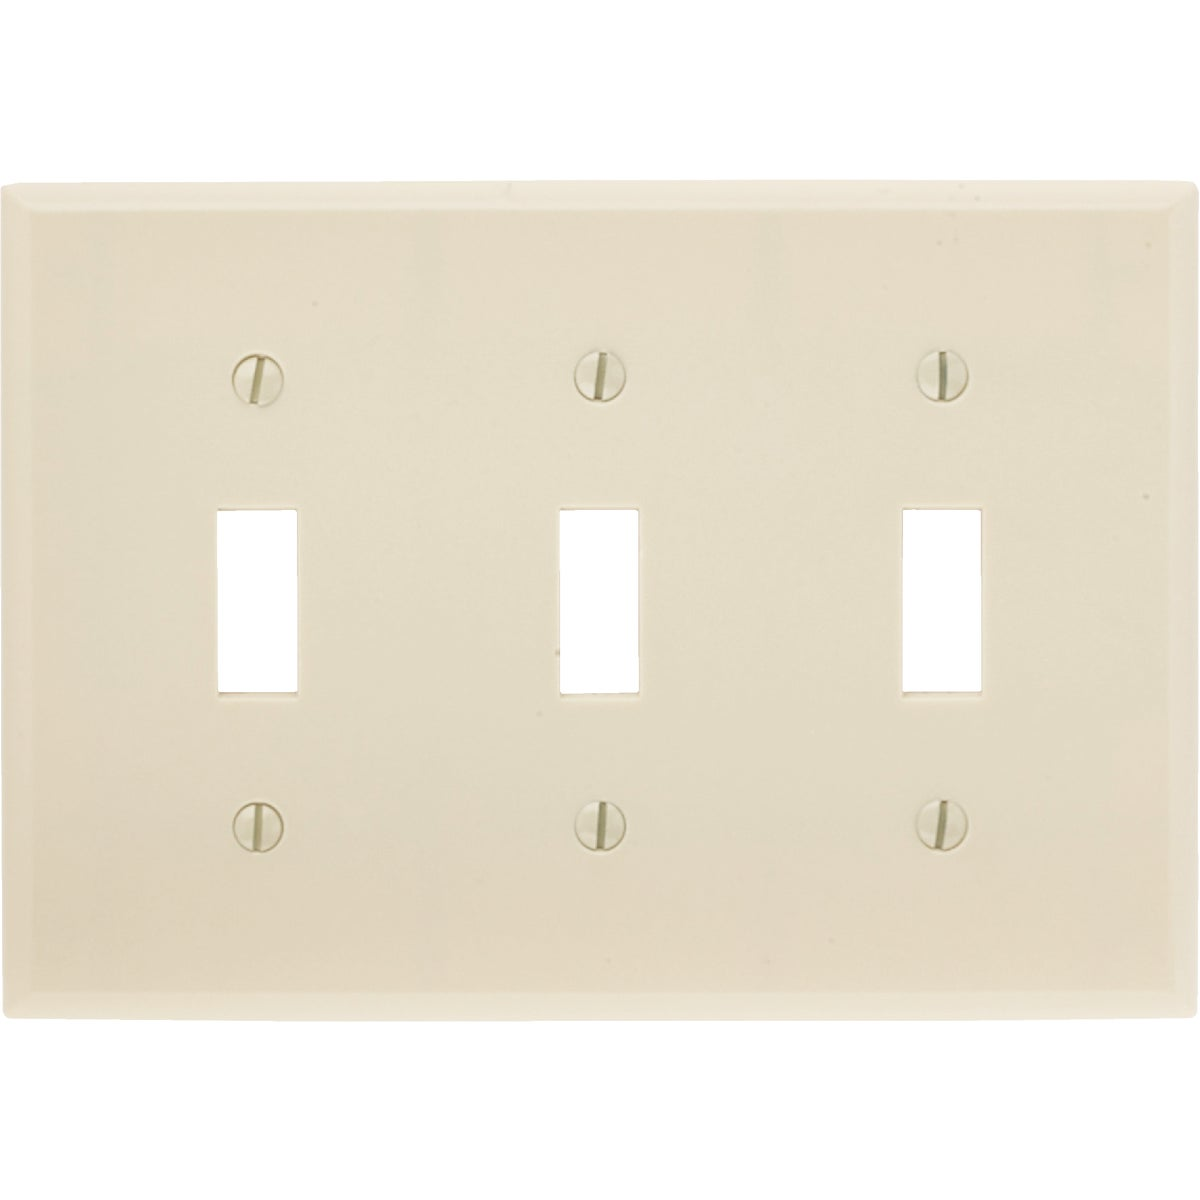 IV 3-TOGGLE WALL PLATE